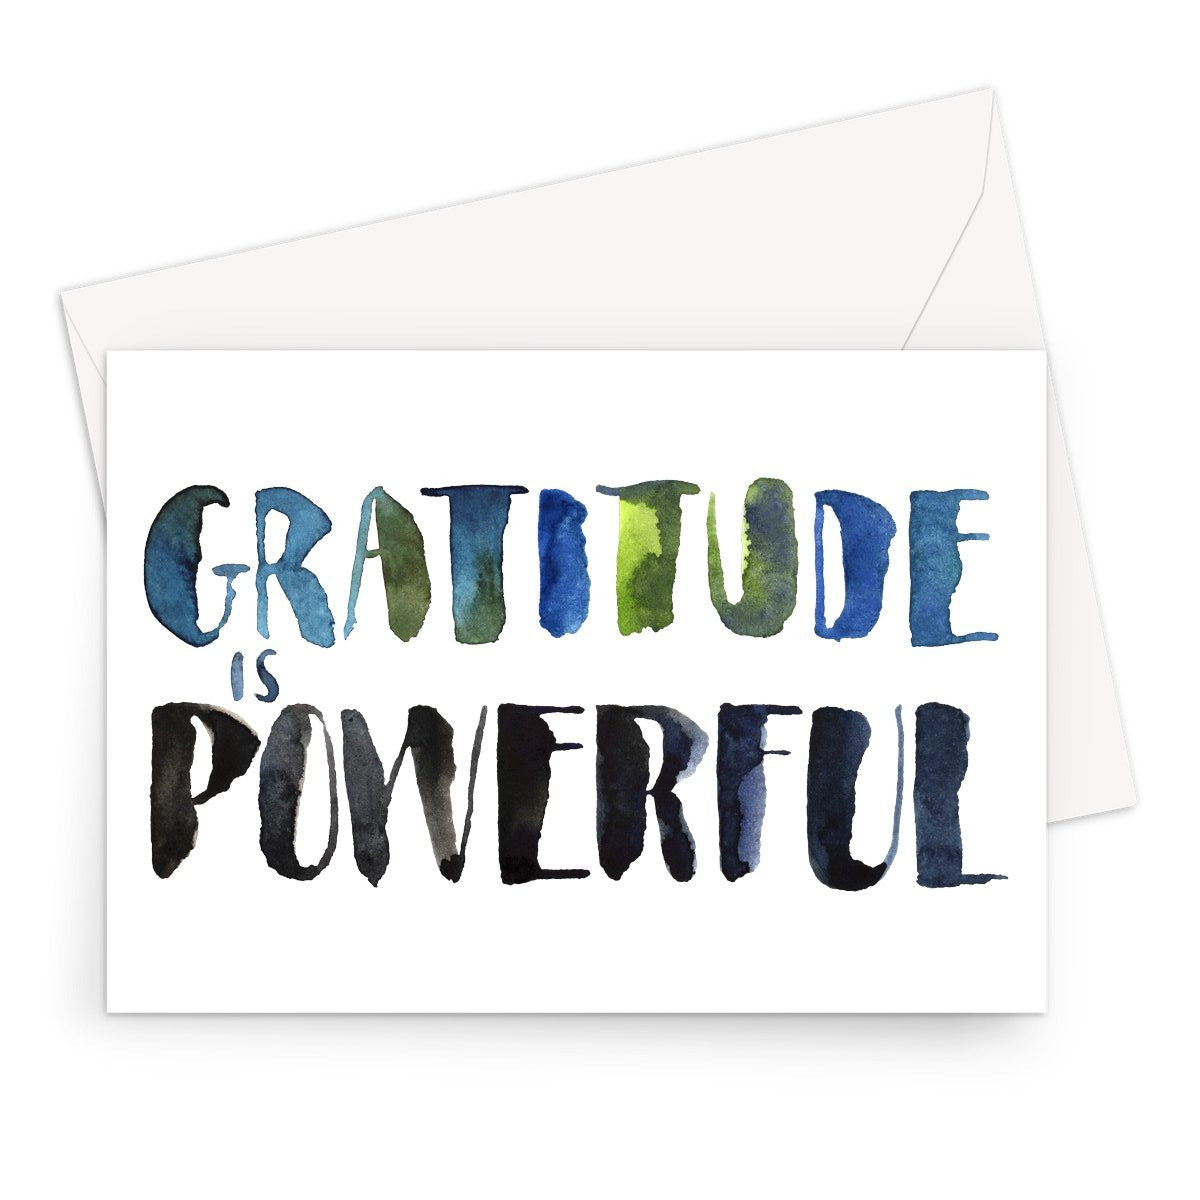 Hand-painted watercolour typography. Gratitude is associated with happiness, positive feelings, even improved health. It can reduce stress, help us deal with anxiety, make us kinder, more compassionate, and thankful for the simple yet beautiful things in our lives. Gratitude, and appreciation, strengthen us from within and yes, that's powerful. Practice it daily!